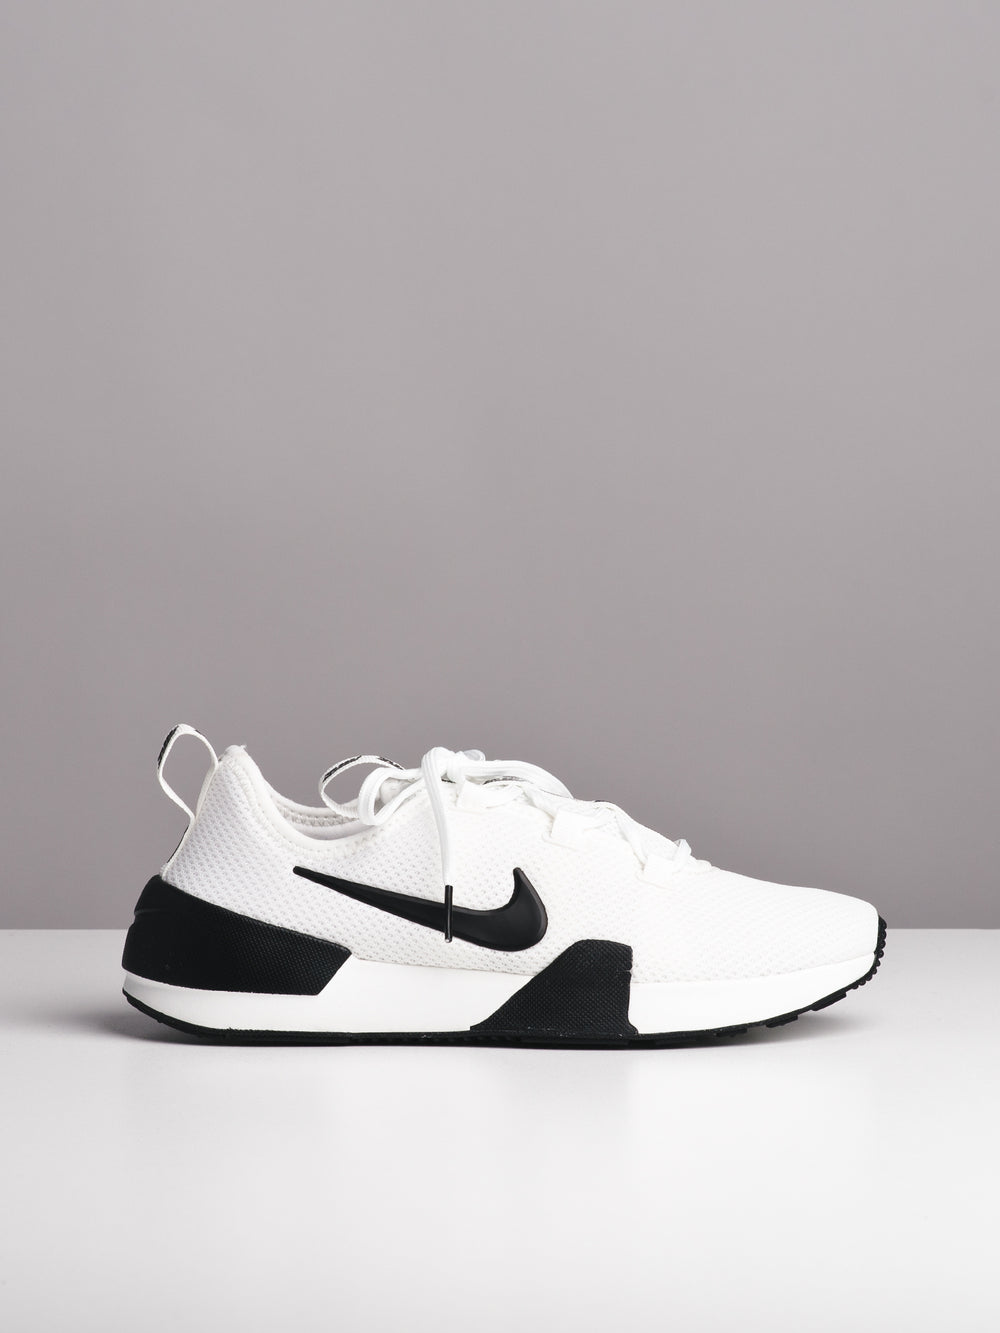 WOMENS ASHIN MODERN WHITE/BLACK SNEAKERS- CLEARANCE